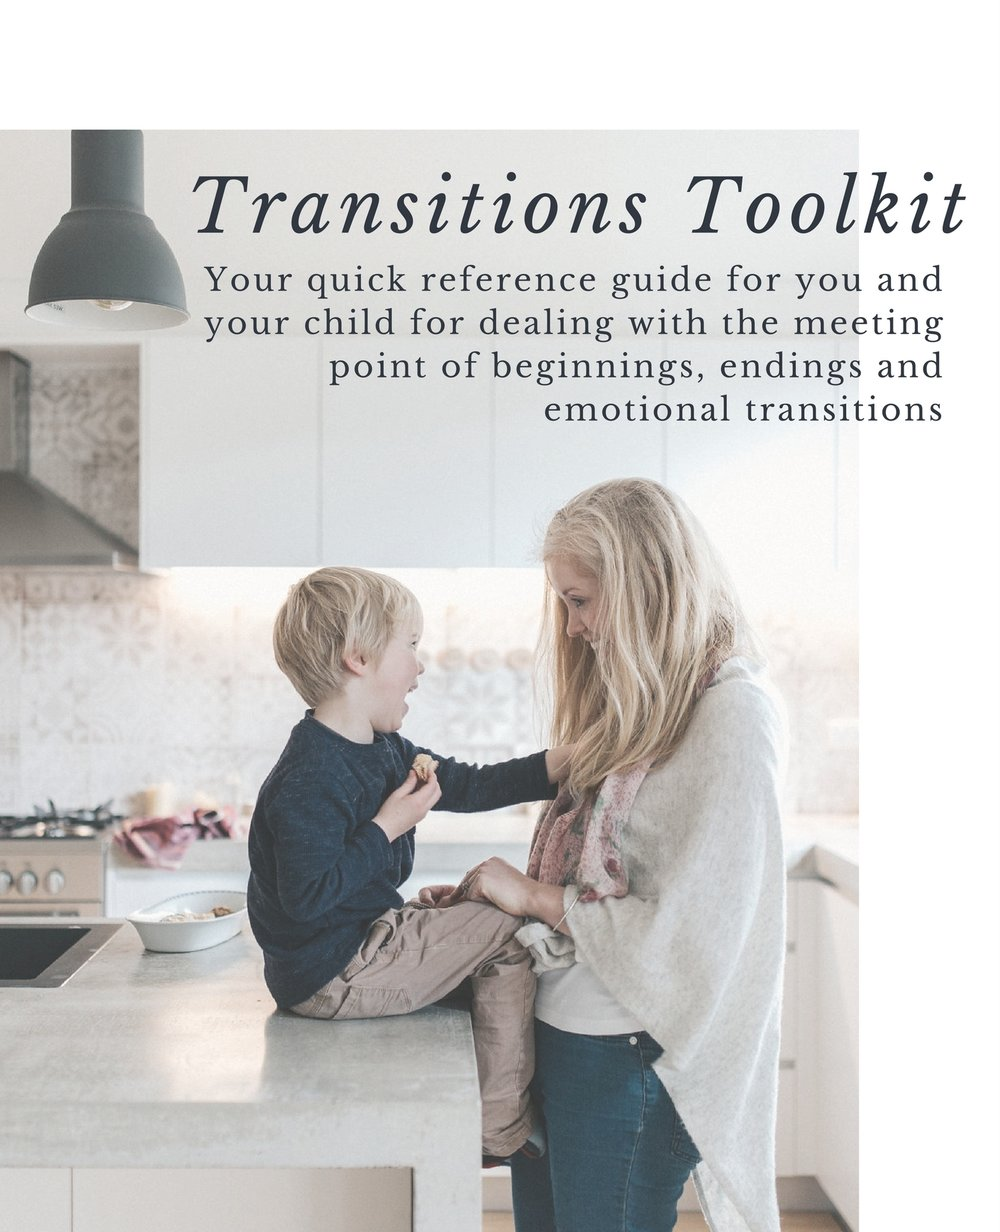 Transitions Toolkit cover.jpg